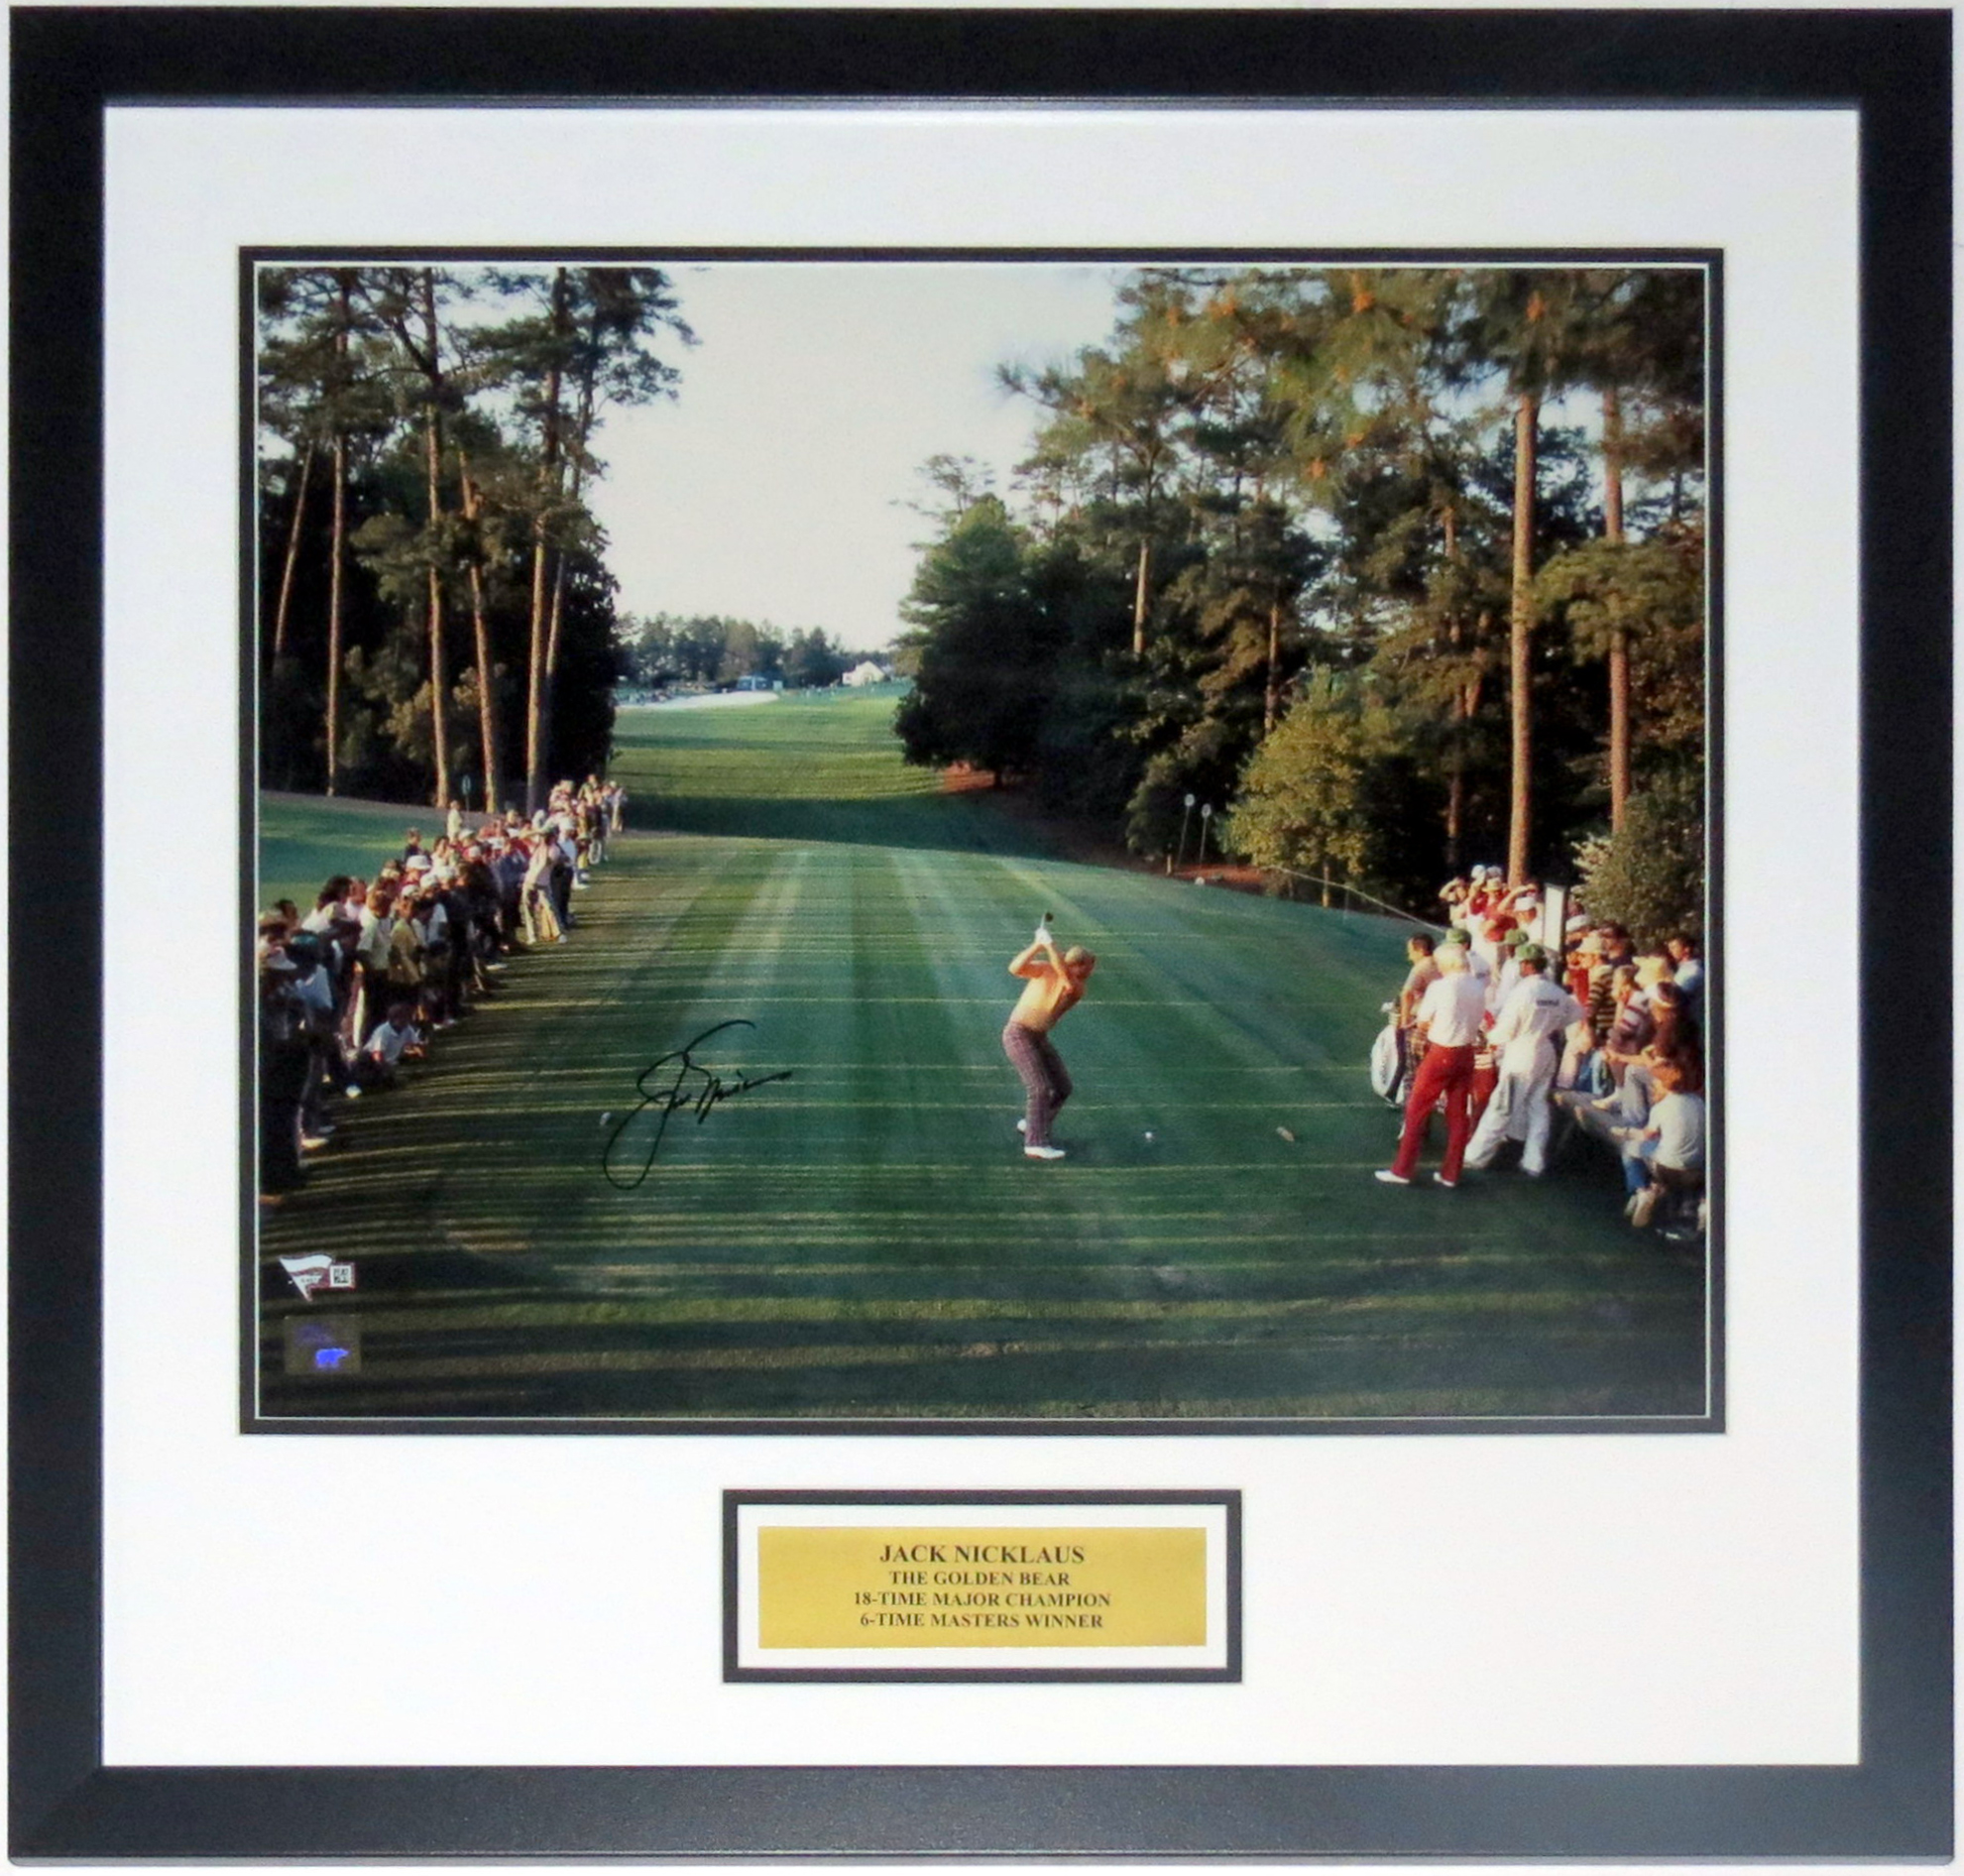 Jack Nicklaus Signed 1986 Augusta Masters 18th Hole 16x20 Photo - Fanatics COA Authenticated - Professionally Framed & Plate